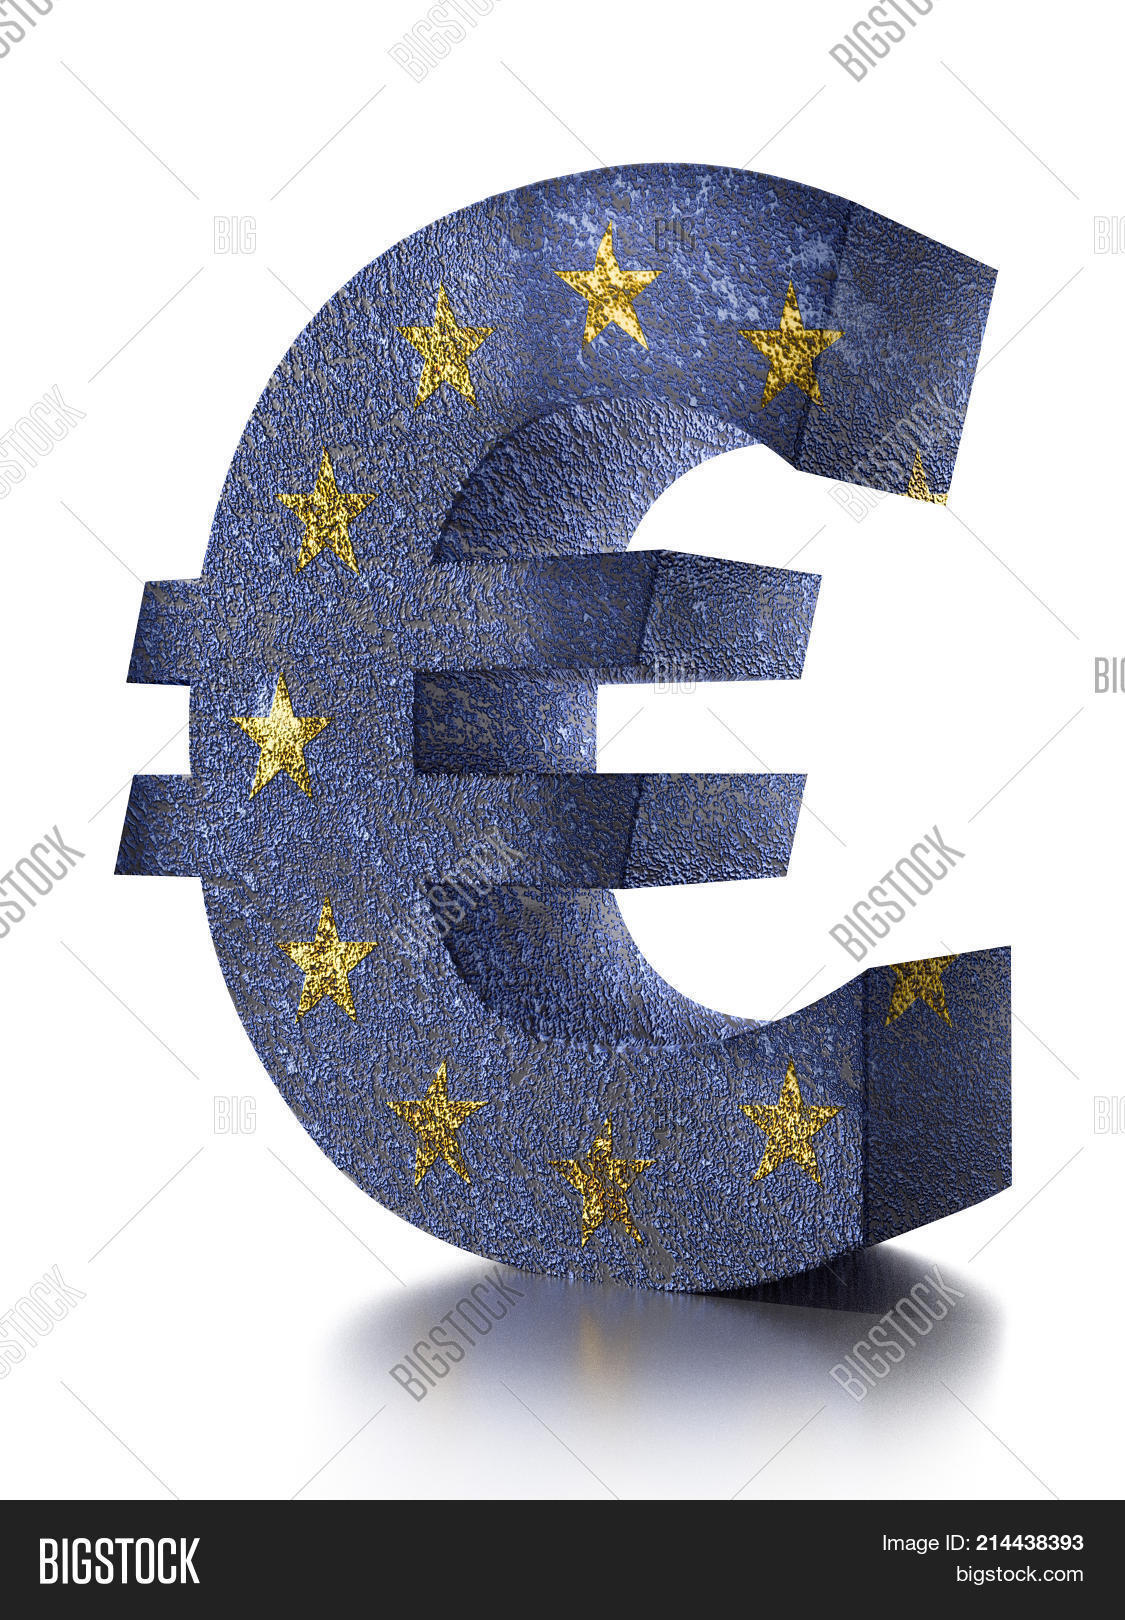 3d Rendering Euro Image Photo Free Trial Bigstock